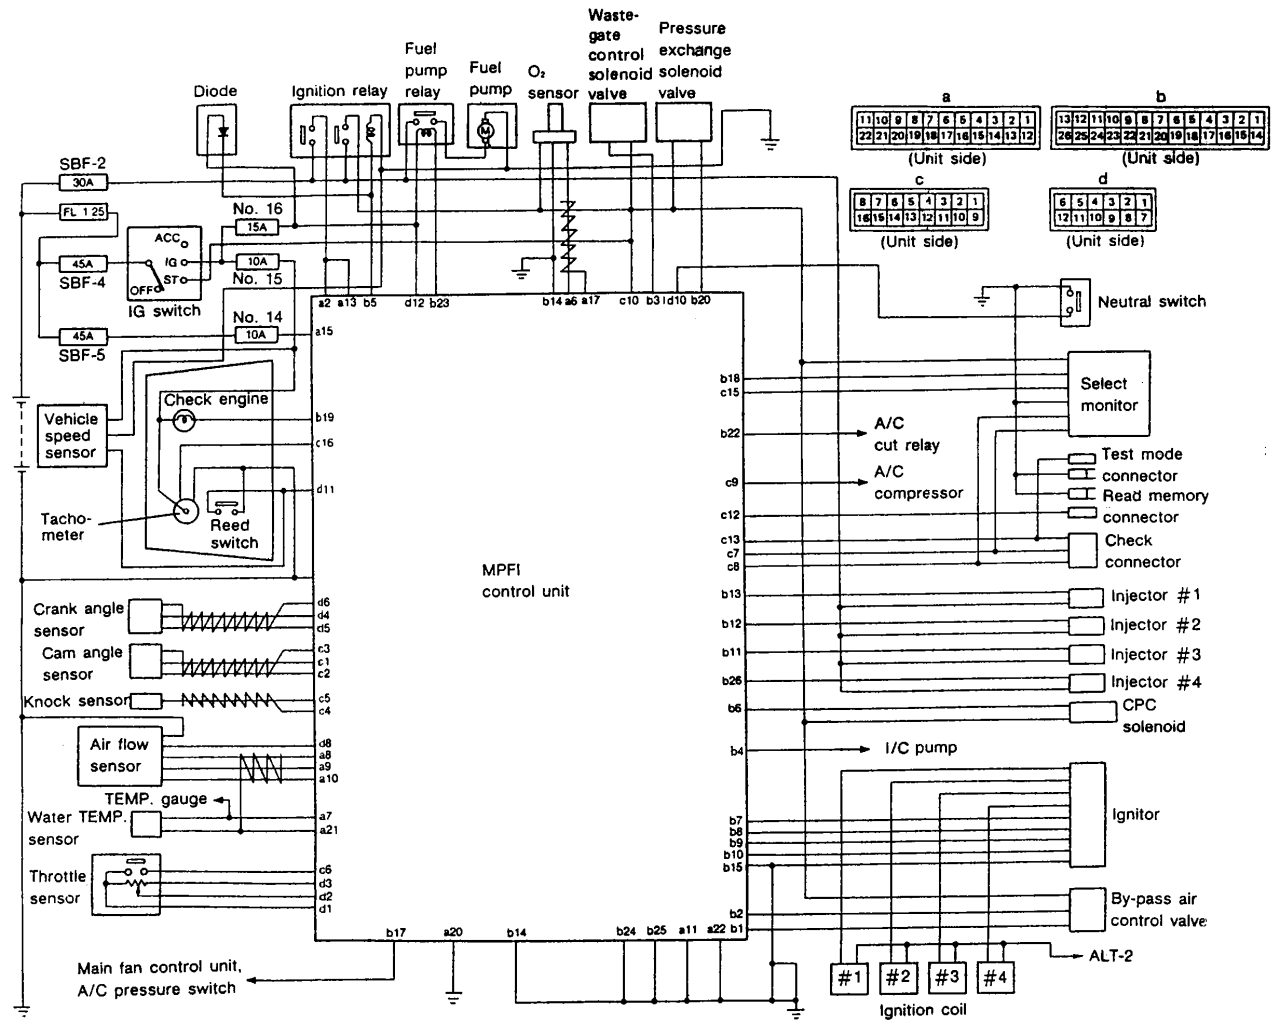 1997 subaru legacy stereo wiring diagram collection